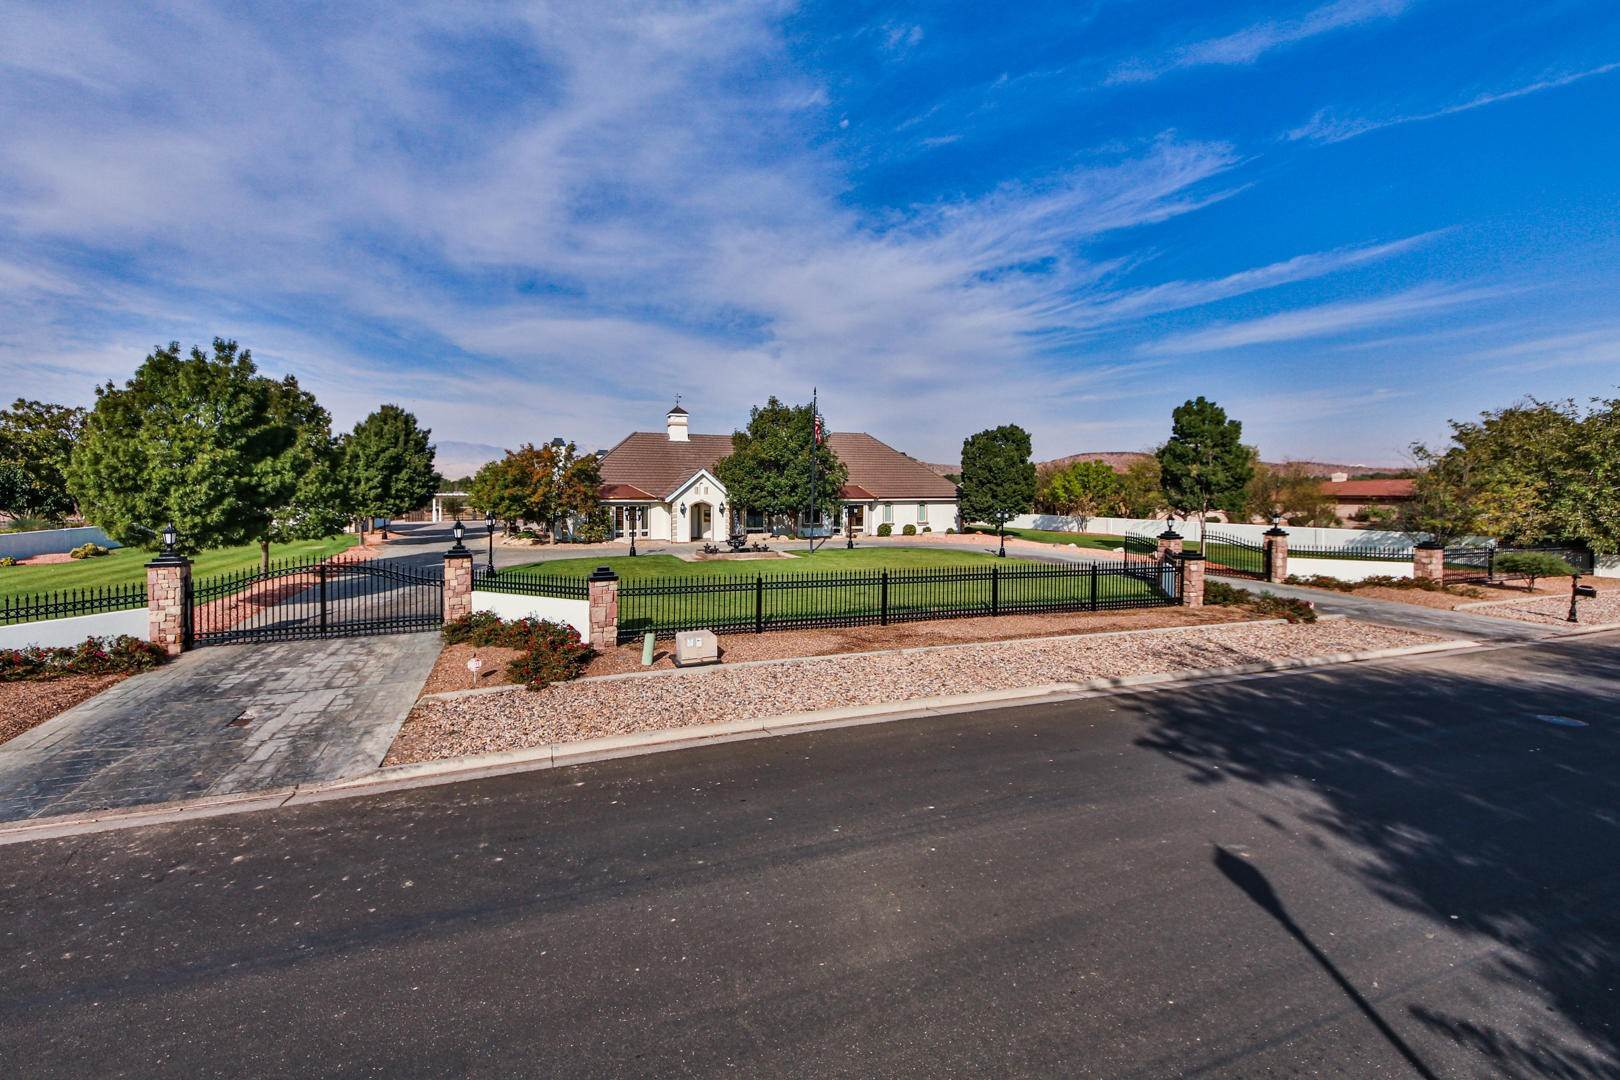 Single Family Homes for Sale at 3672 Sugar Leo St. George, Utah 84790 United States